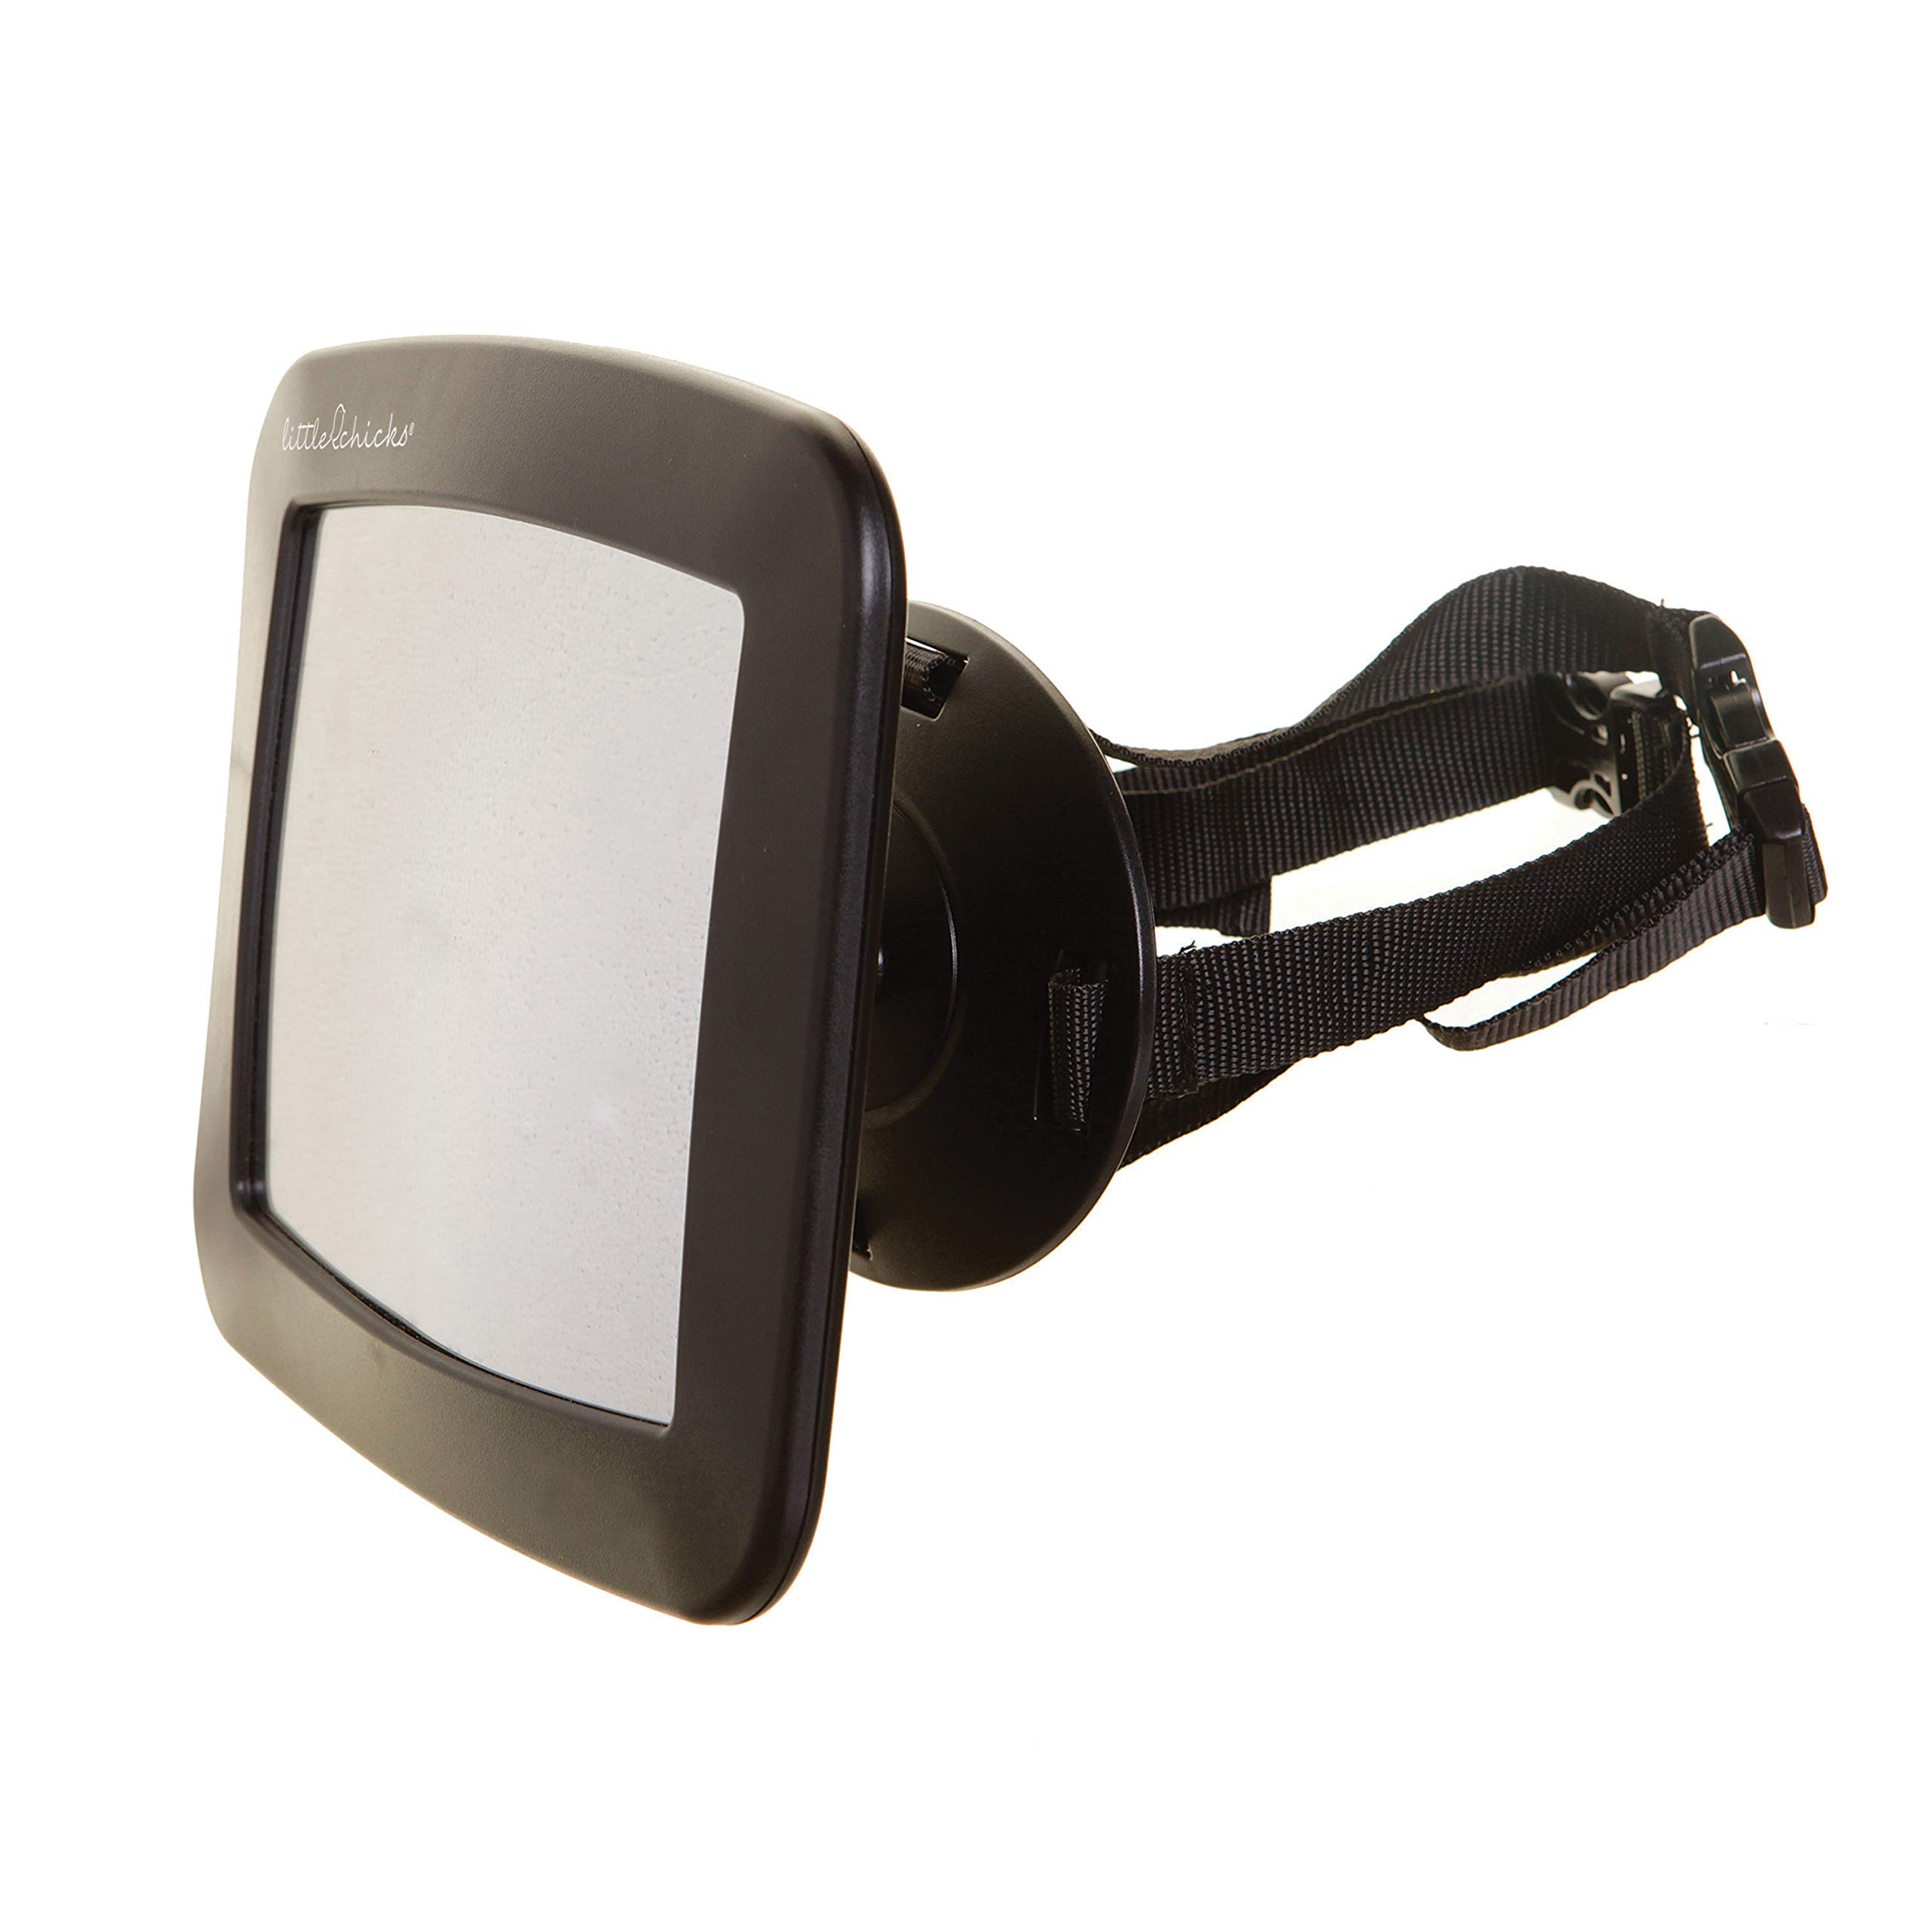 Little Chicks Adjustable Mirror for Rear Facing Car Seats with Securing Dial by Little Chicks